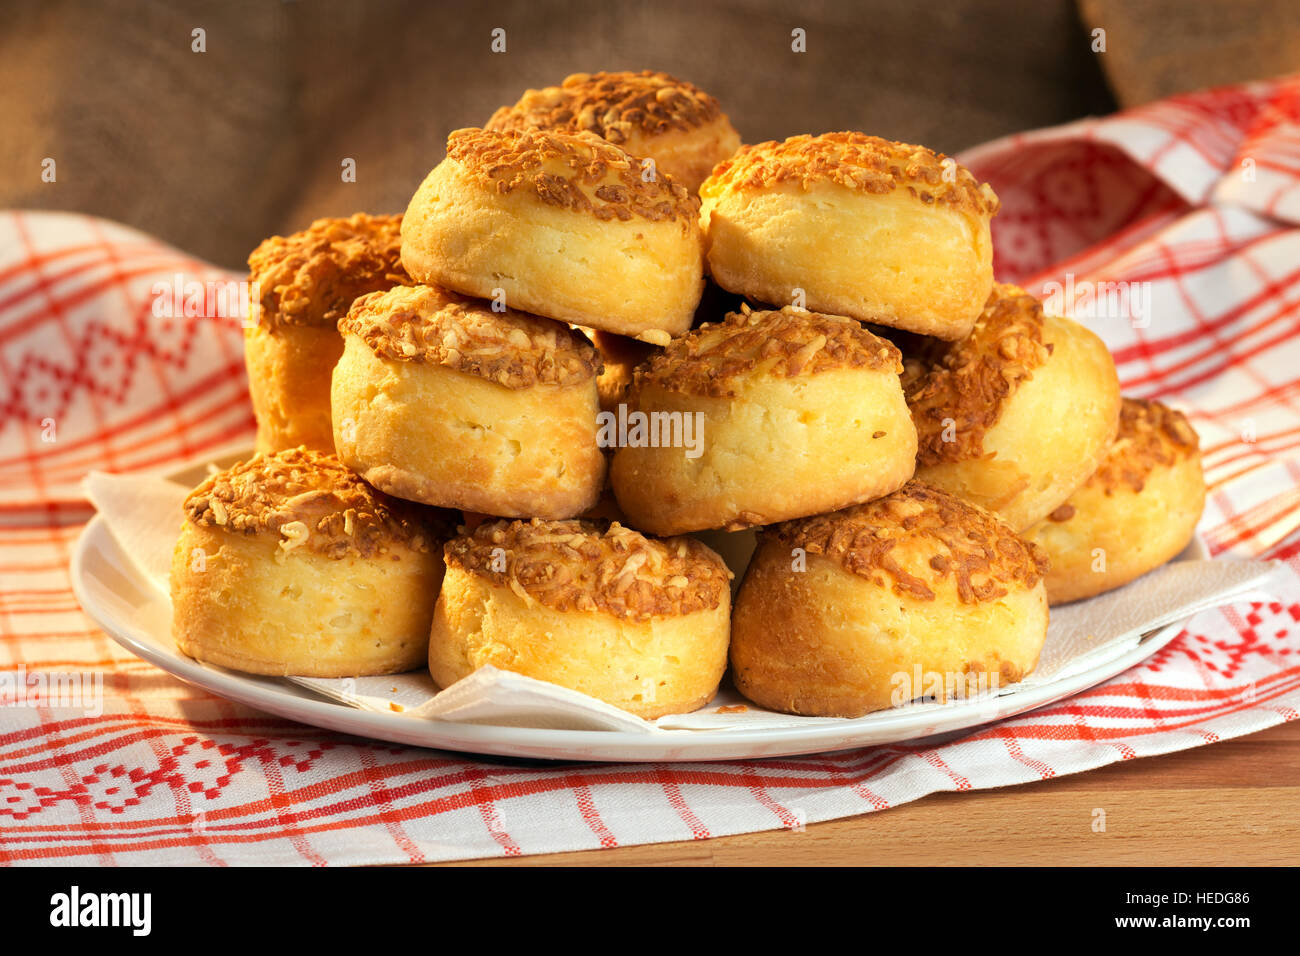 Group of fresh traditional hungarian country food - baked cheese cakes - 'pogácsa' on a plate - Stock Image